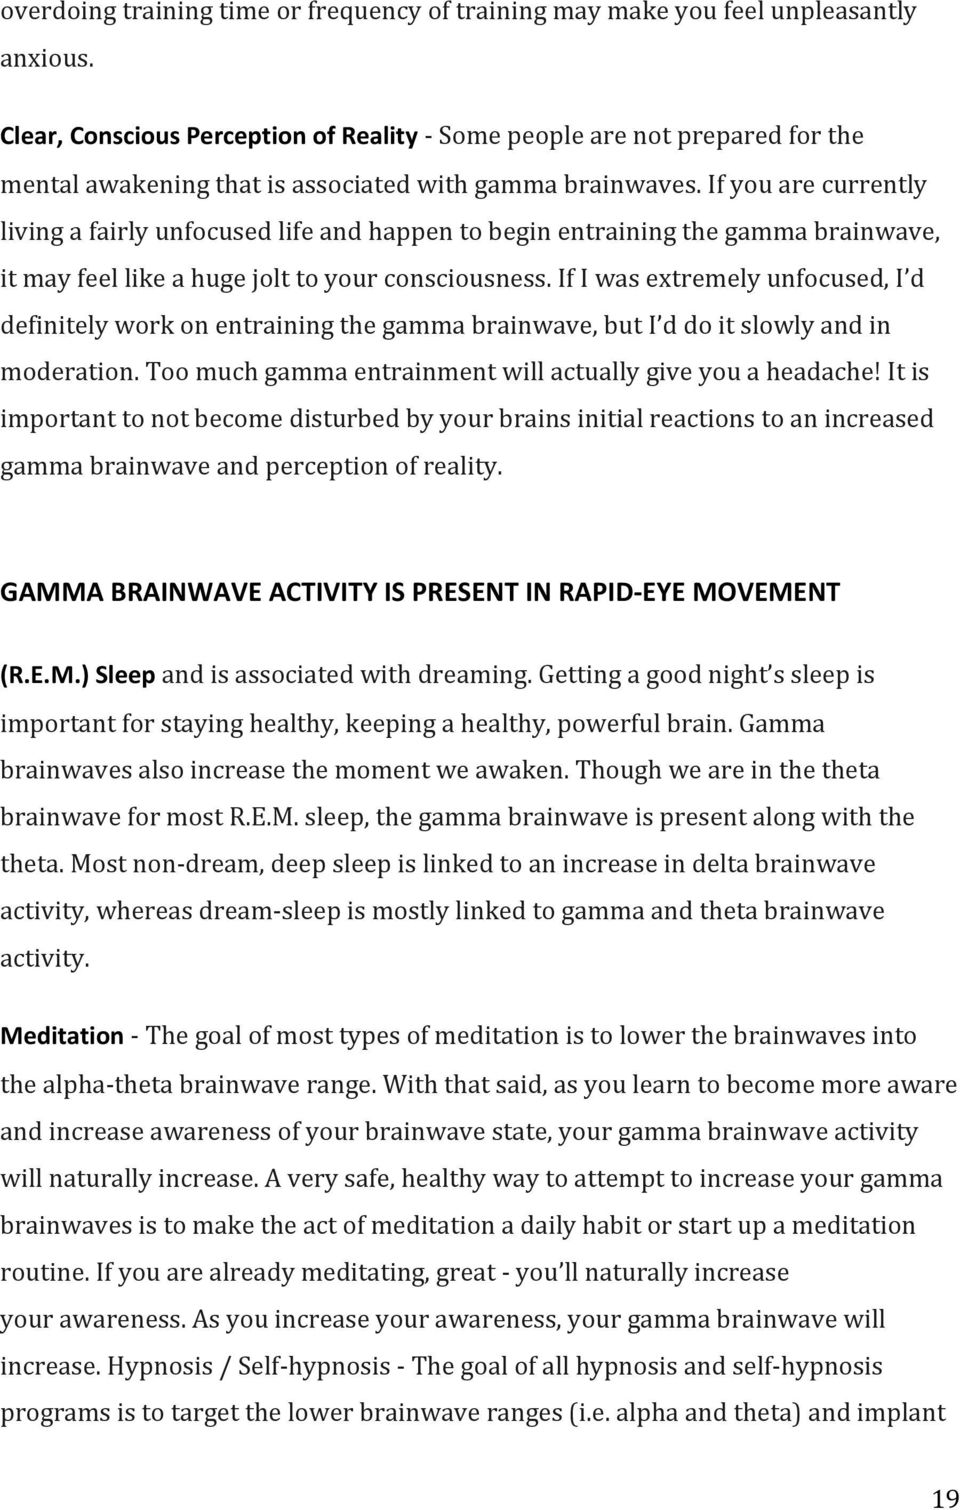 If you are currently living a fairly unfocused life and happen to begin entraining the gamma brainwave, it may feel like a huge jolt to your consciousness.